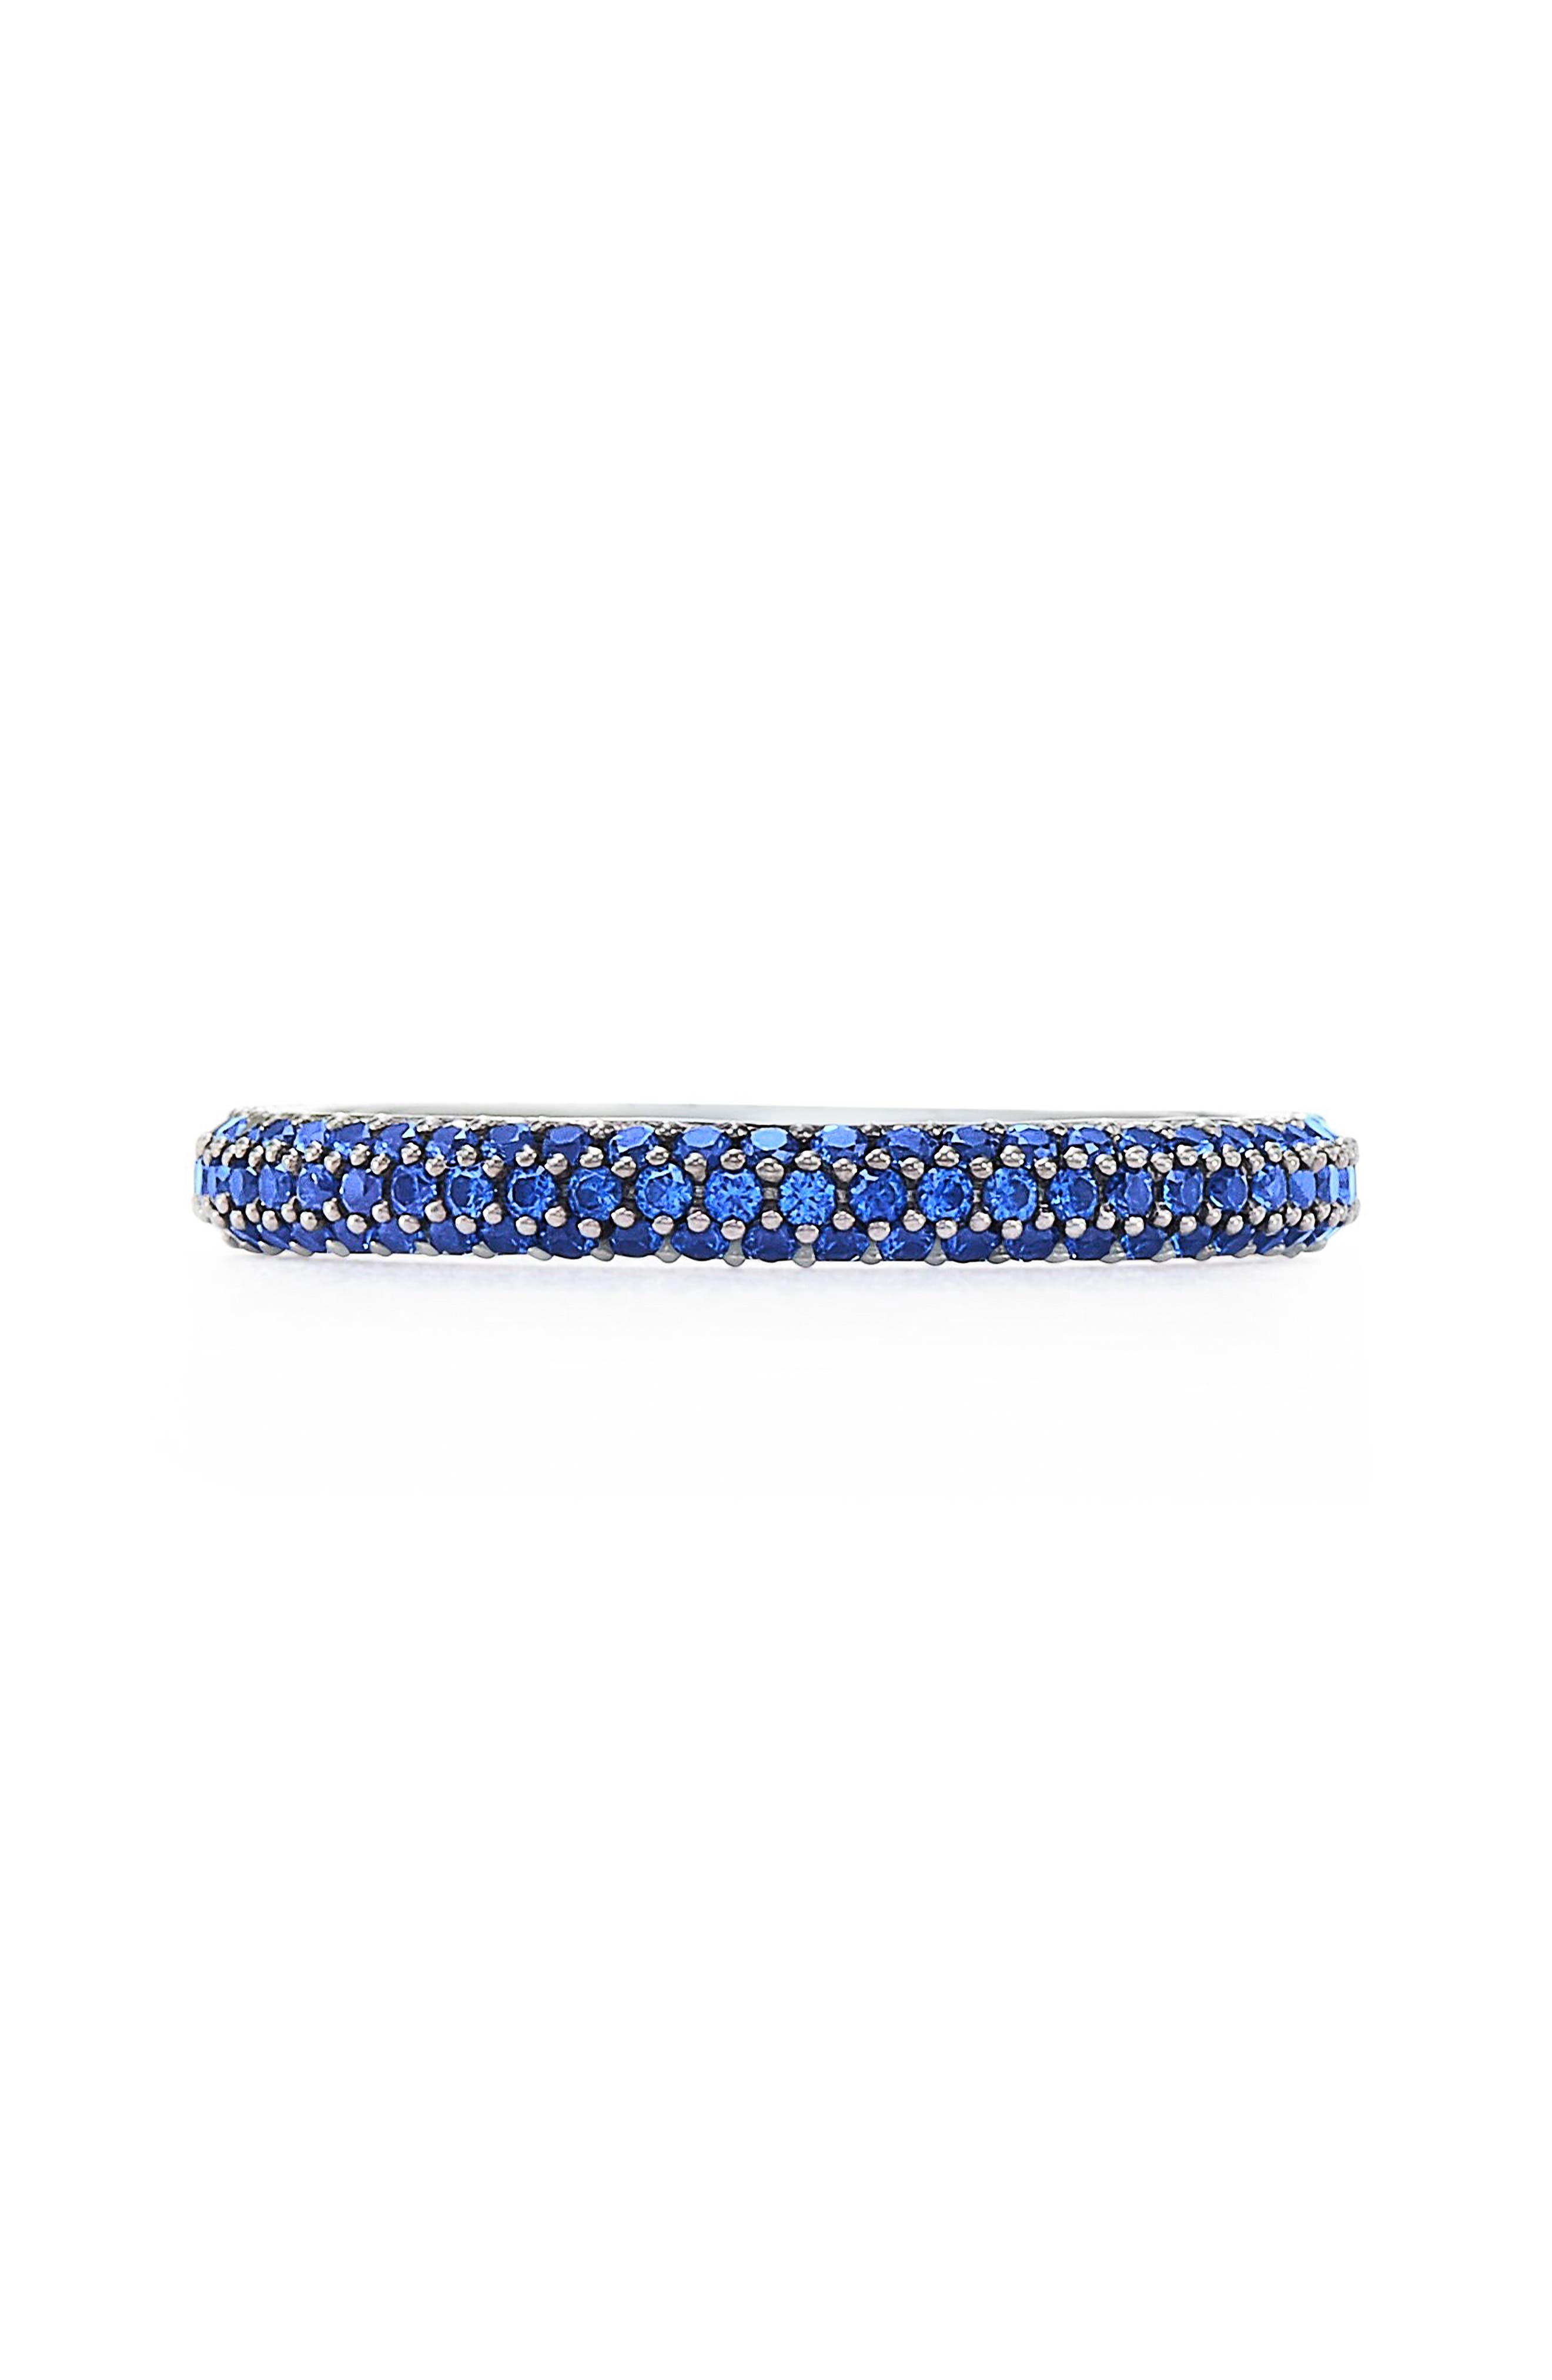 Moonlight Sapphire Stacking Ring,                         Main,                         color, 711